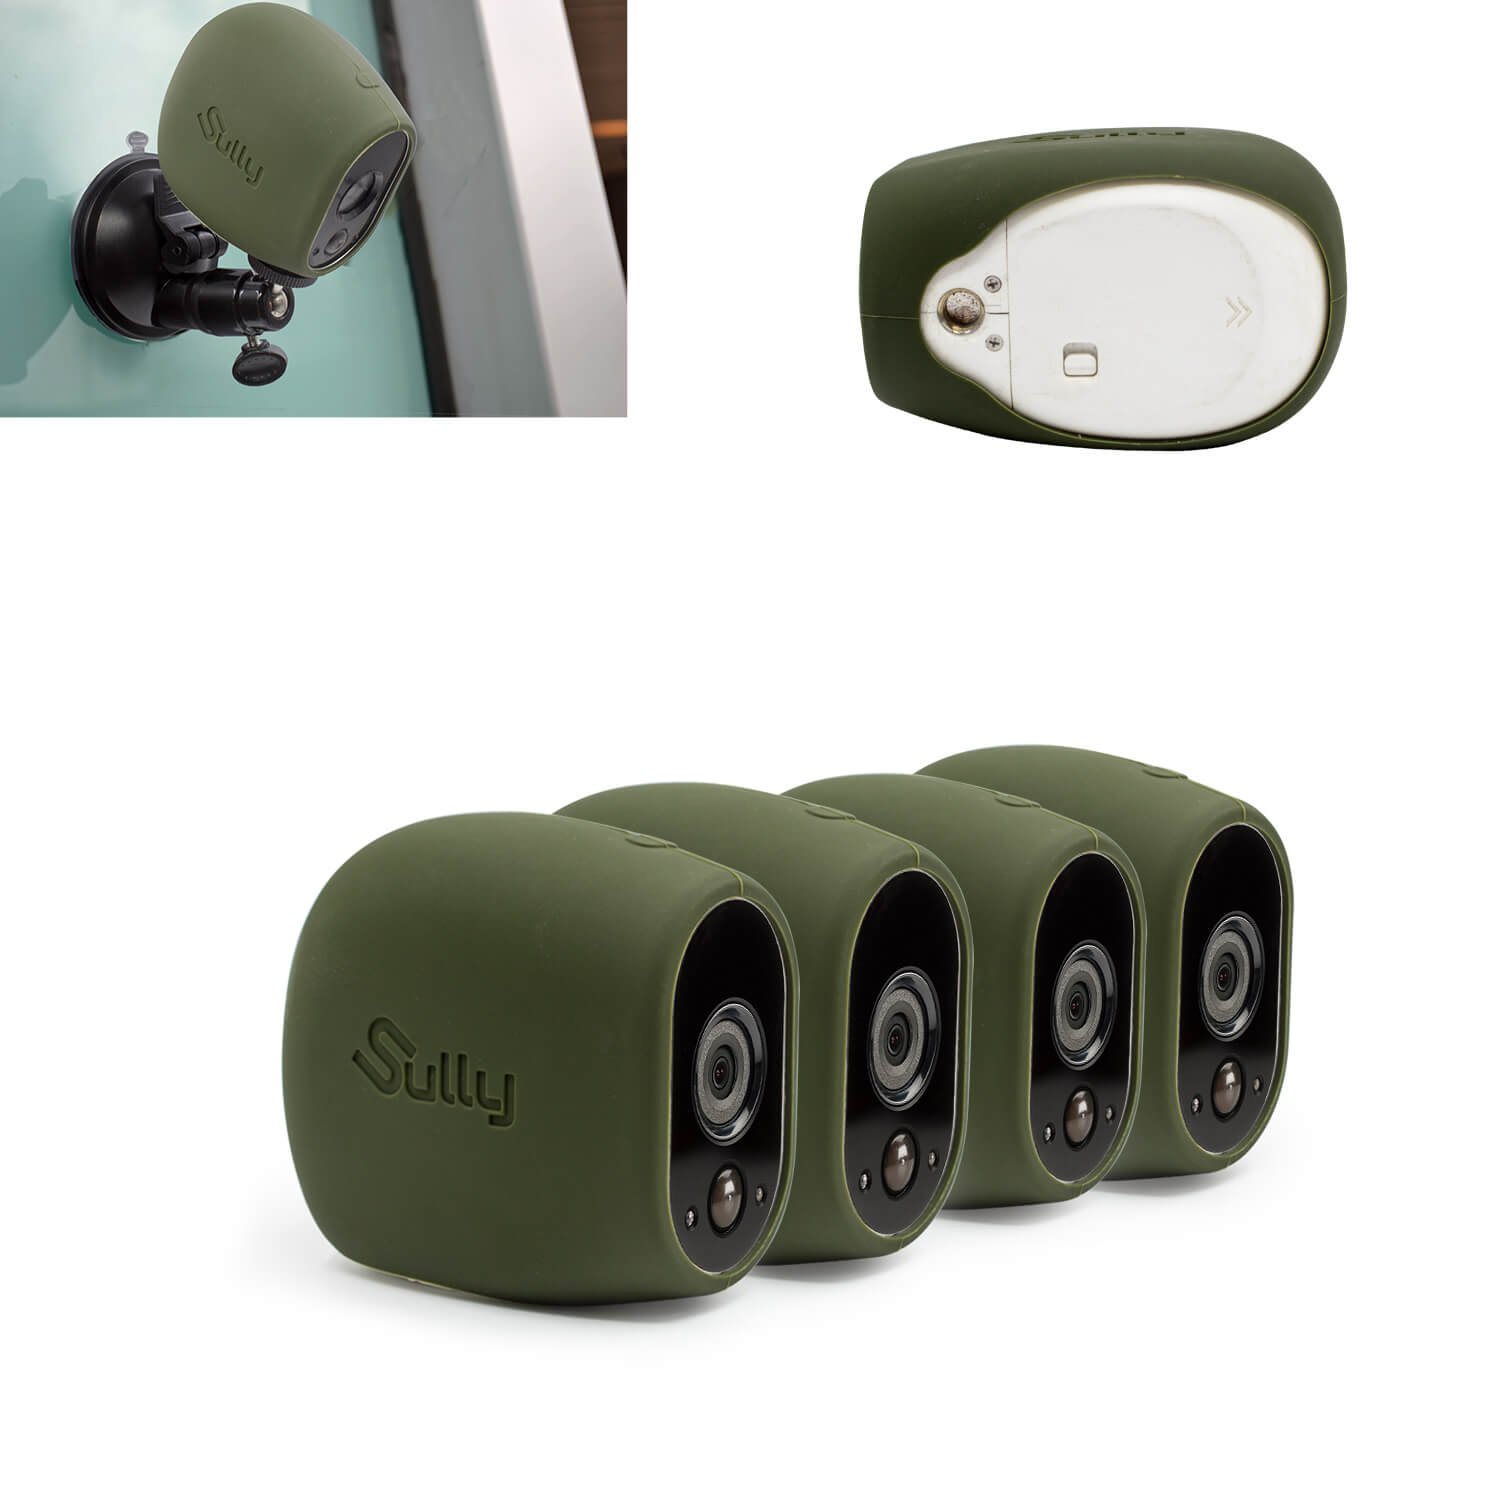 Silicone Skins for Arlo HD (4 pcs green) for Arlo HD Wireless Free Camera Protective Case - for Netgear Arlo HD Smart Security Accessories Silikon Case - For VMS3230- By Sully